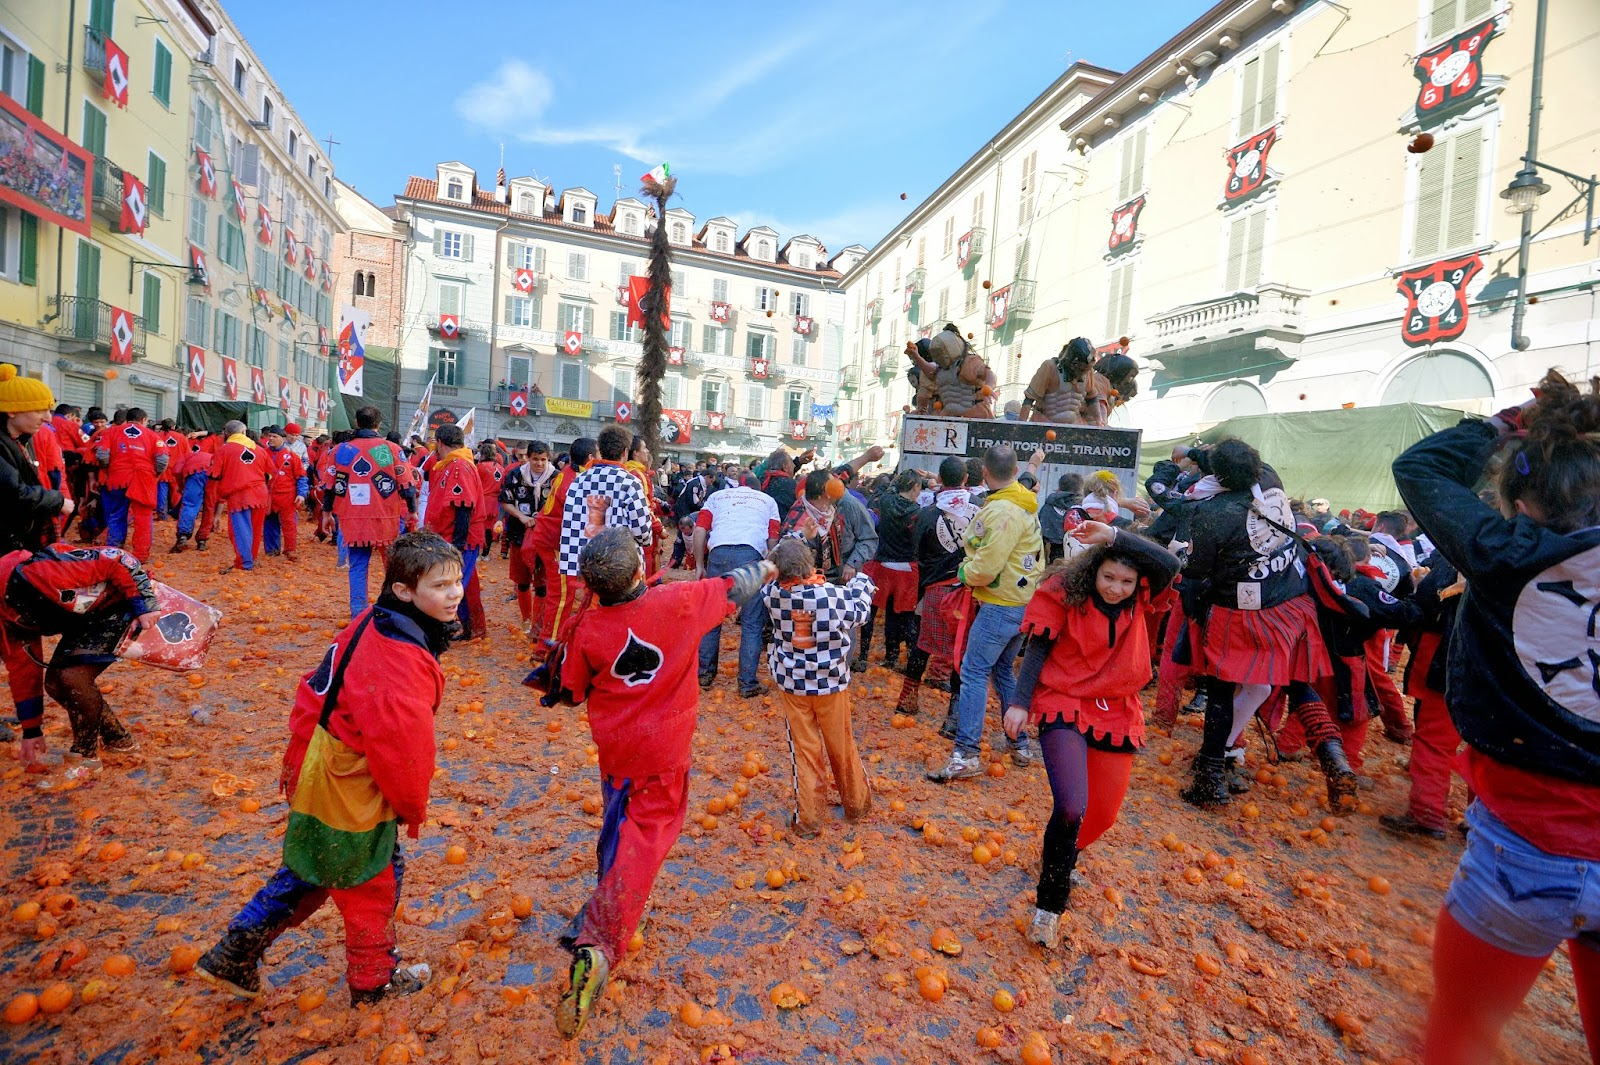 Carnival, Entertainment, Festival, Food, Food fight, Fruits, Italy, Ivrea, News, Offbeat, Oranges, Tradition, Feature, Culture,